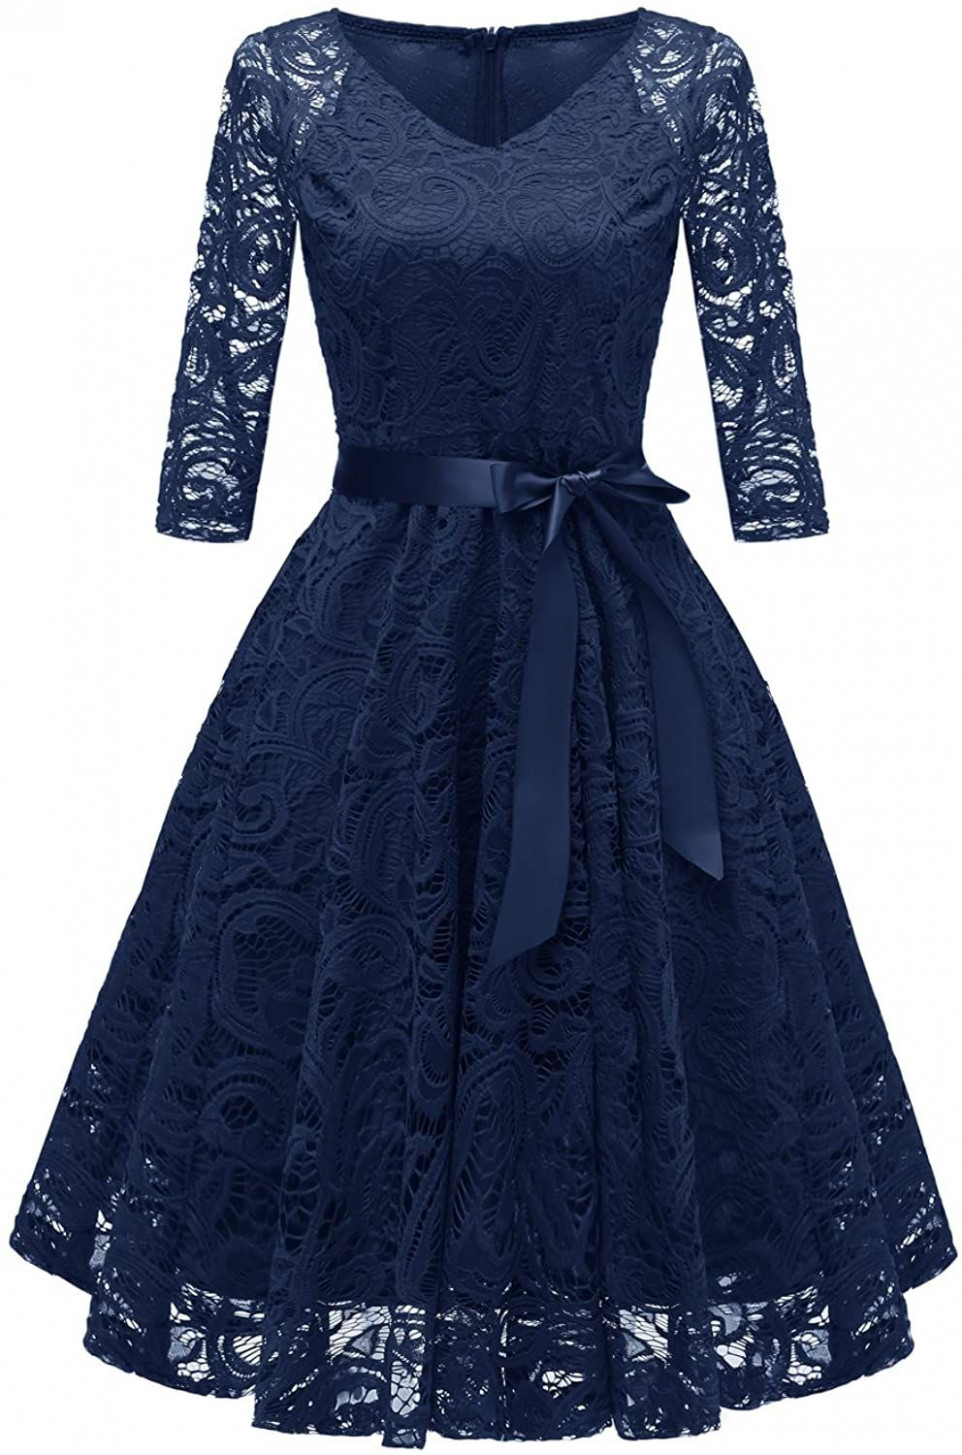 chowsir women vneck formal lace evening party prom midi dress swing cocktailkleid